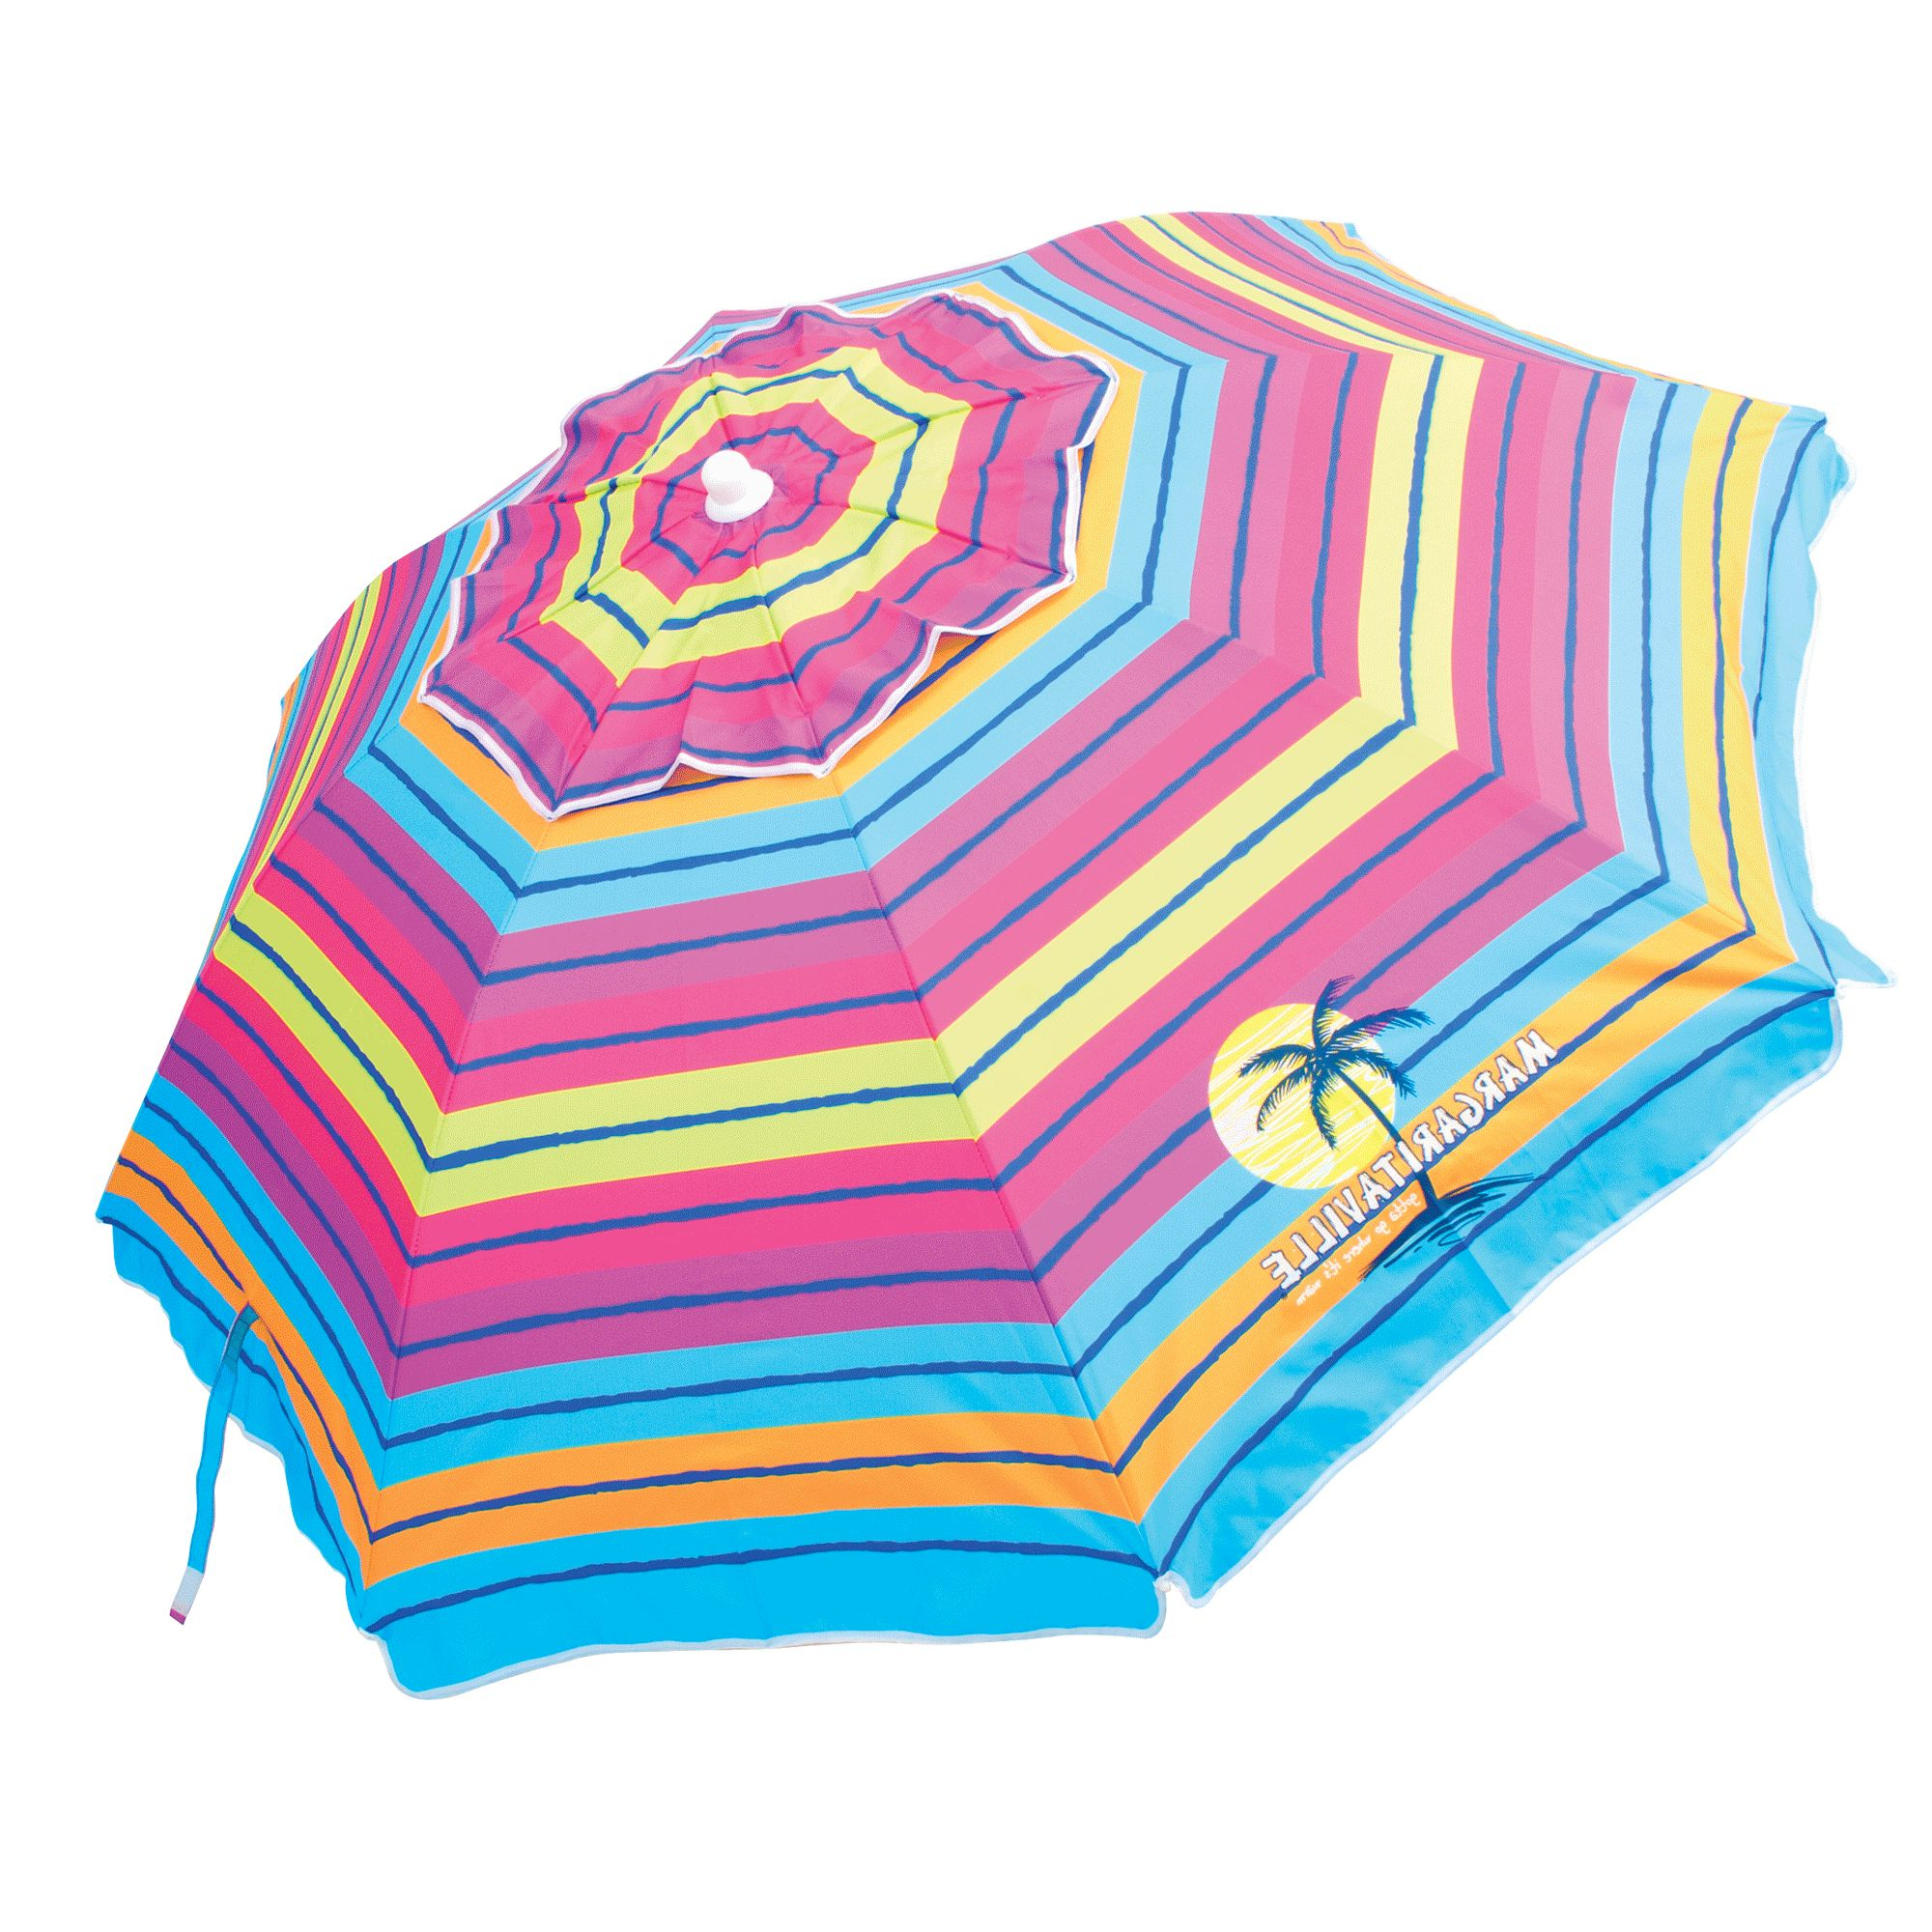 Margaritaville 6.5 Ft. Upf 50+ Sun Protection Tilt Umbrella With Sand Anchor With Regard To Widely Used Margaritaville Green And Blue Striped Beach With Built In Sand Anchor Umbrellas (Gallery 19 of 20)